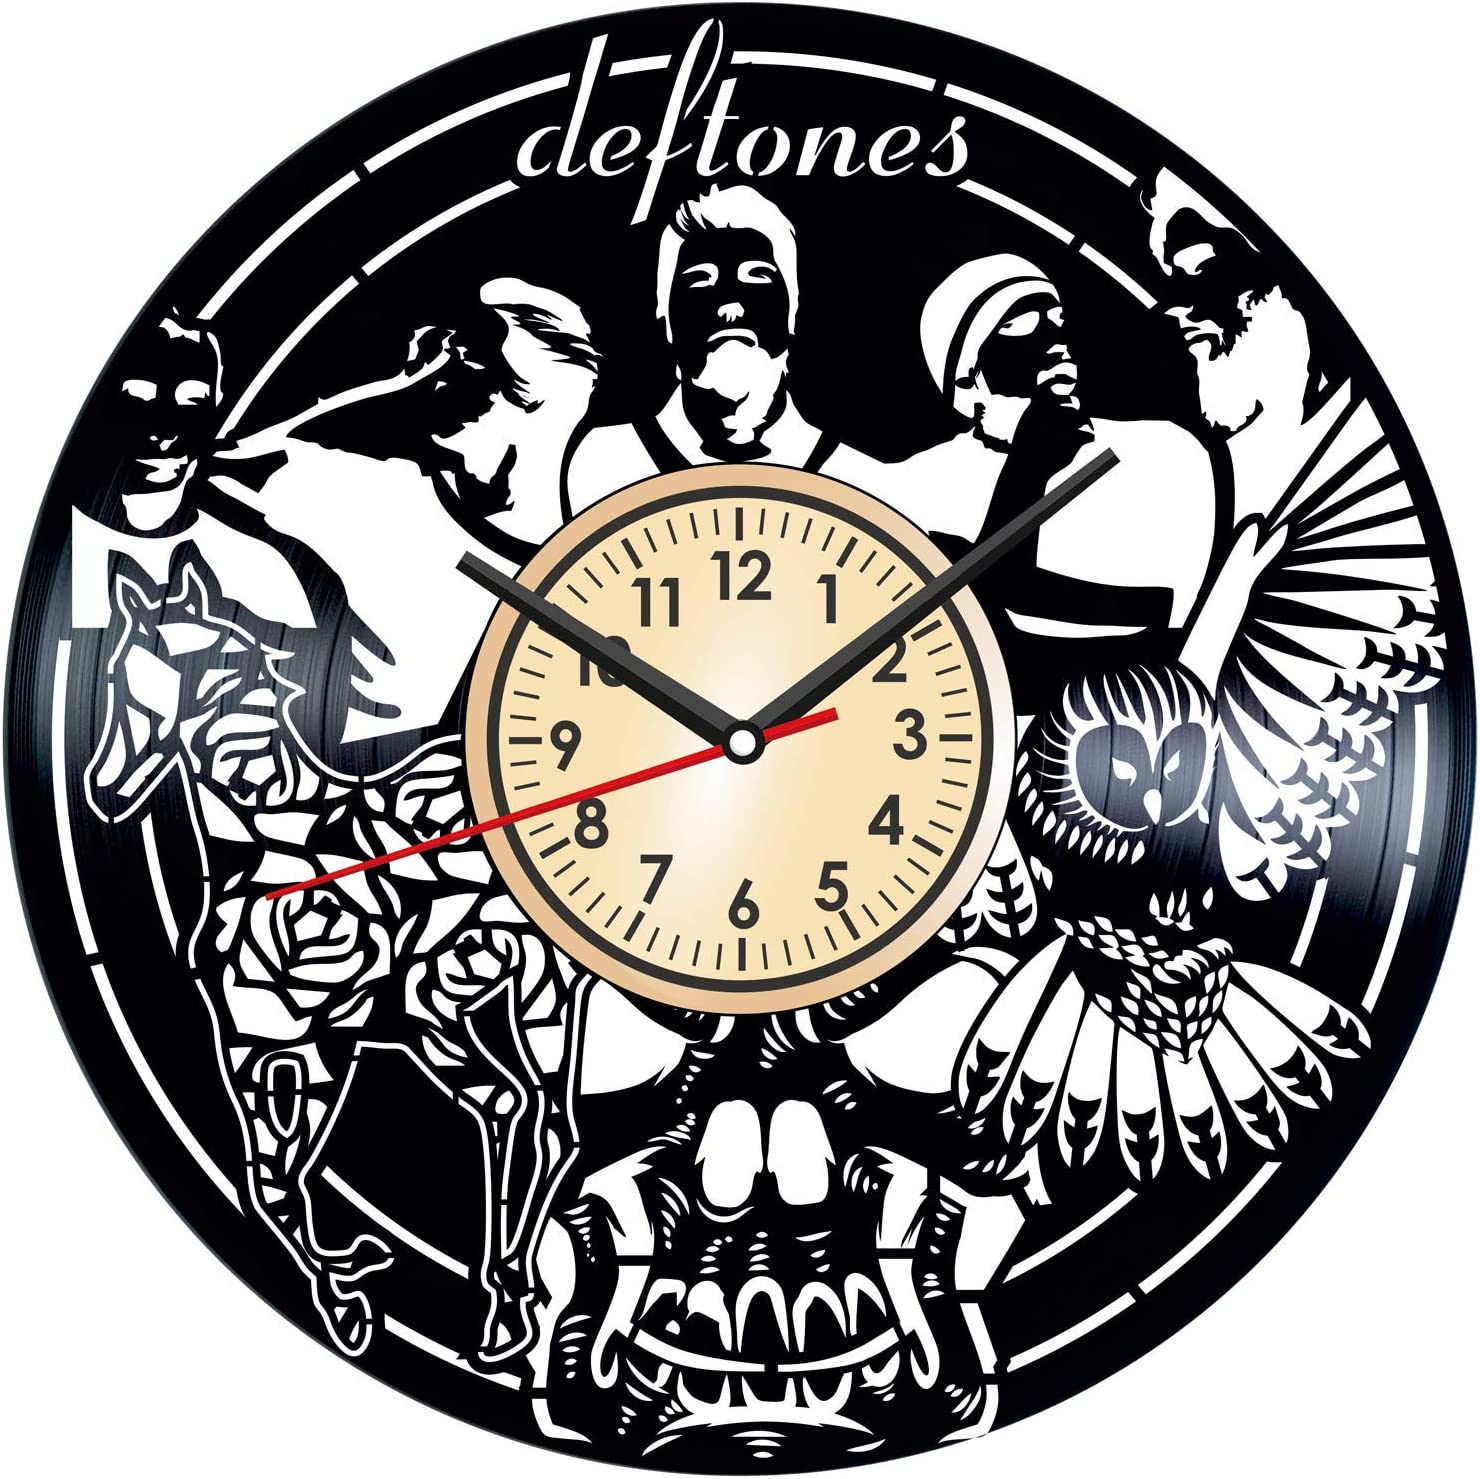 Deftones Vintage Vinyl Wall Clock Poster - Great Home Decor for Bedroom Kitchen Living Room Idea Birthday Christmas Anniversary for Him Her - Unique Wall Art - Size 12 Inches